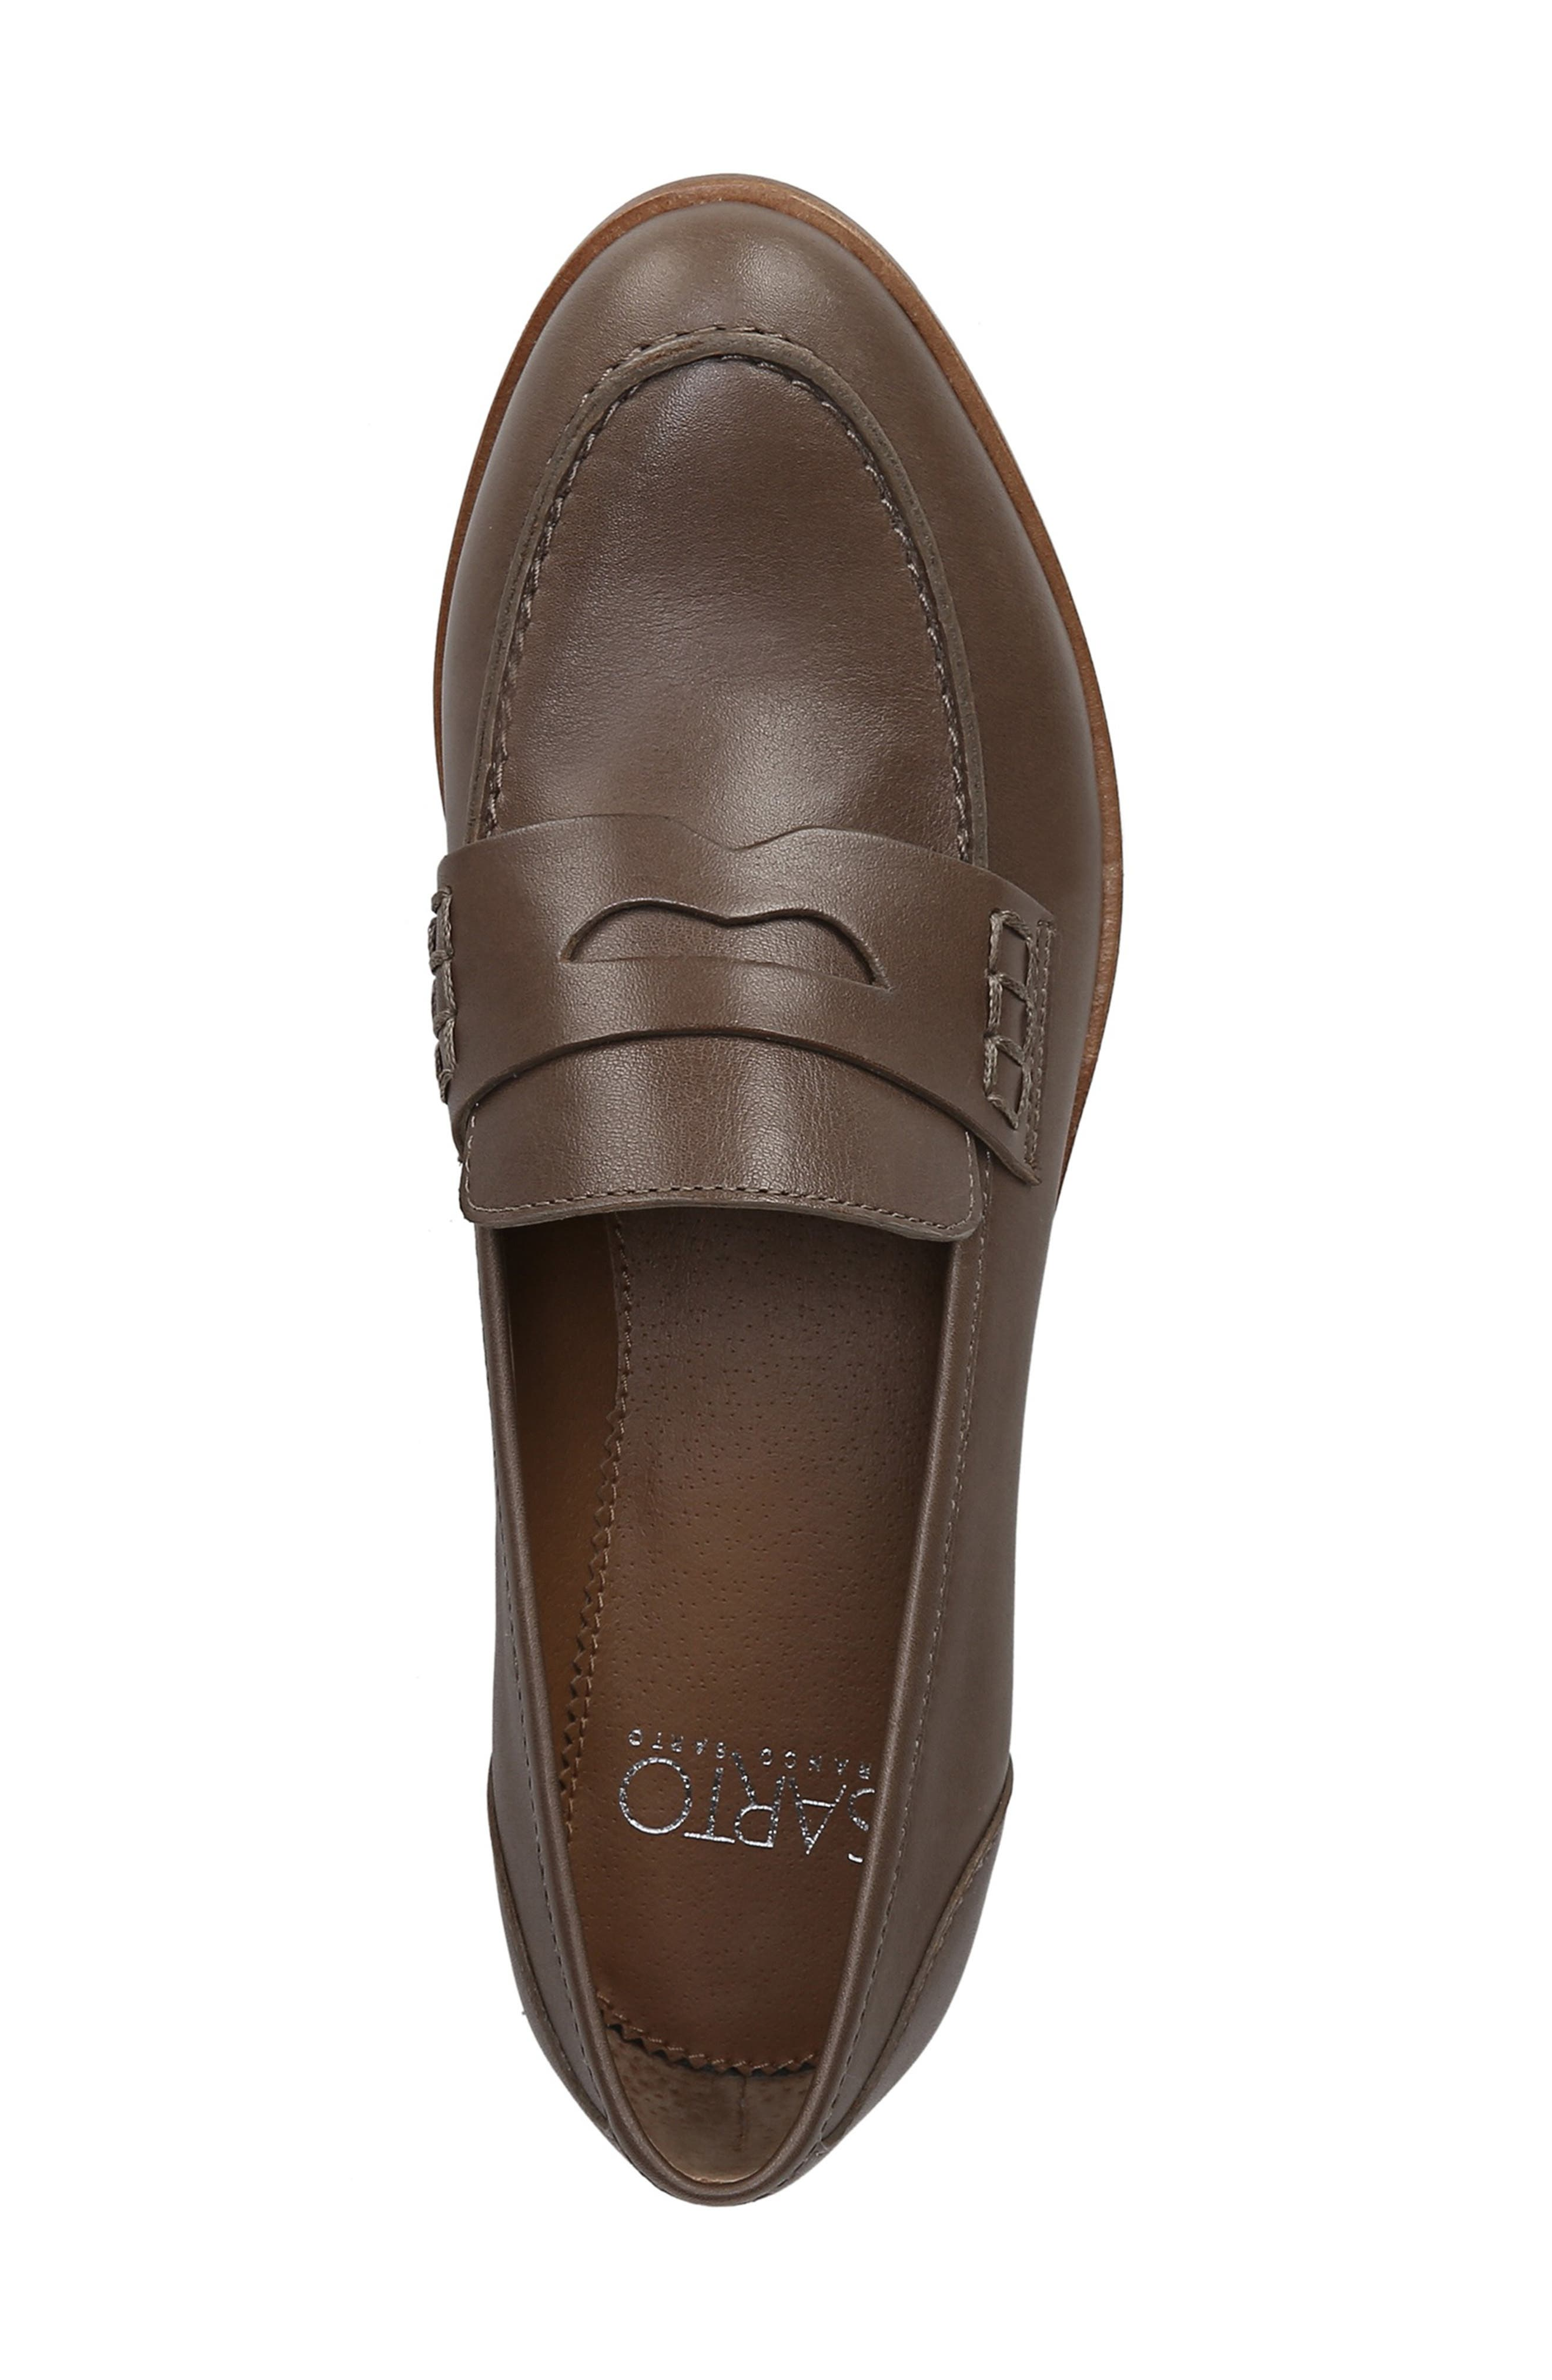 SARTO BY FRANCO SARTO,                             'Jolette' Penny Loafer,                             Alternate thumbnail 5, color,                             DARK PUTTY LEATHER